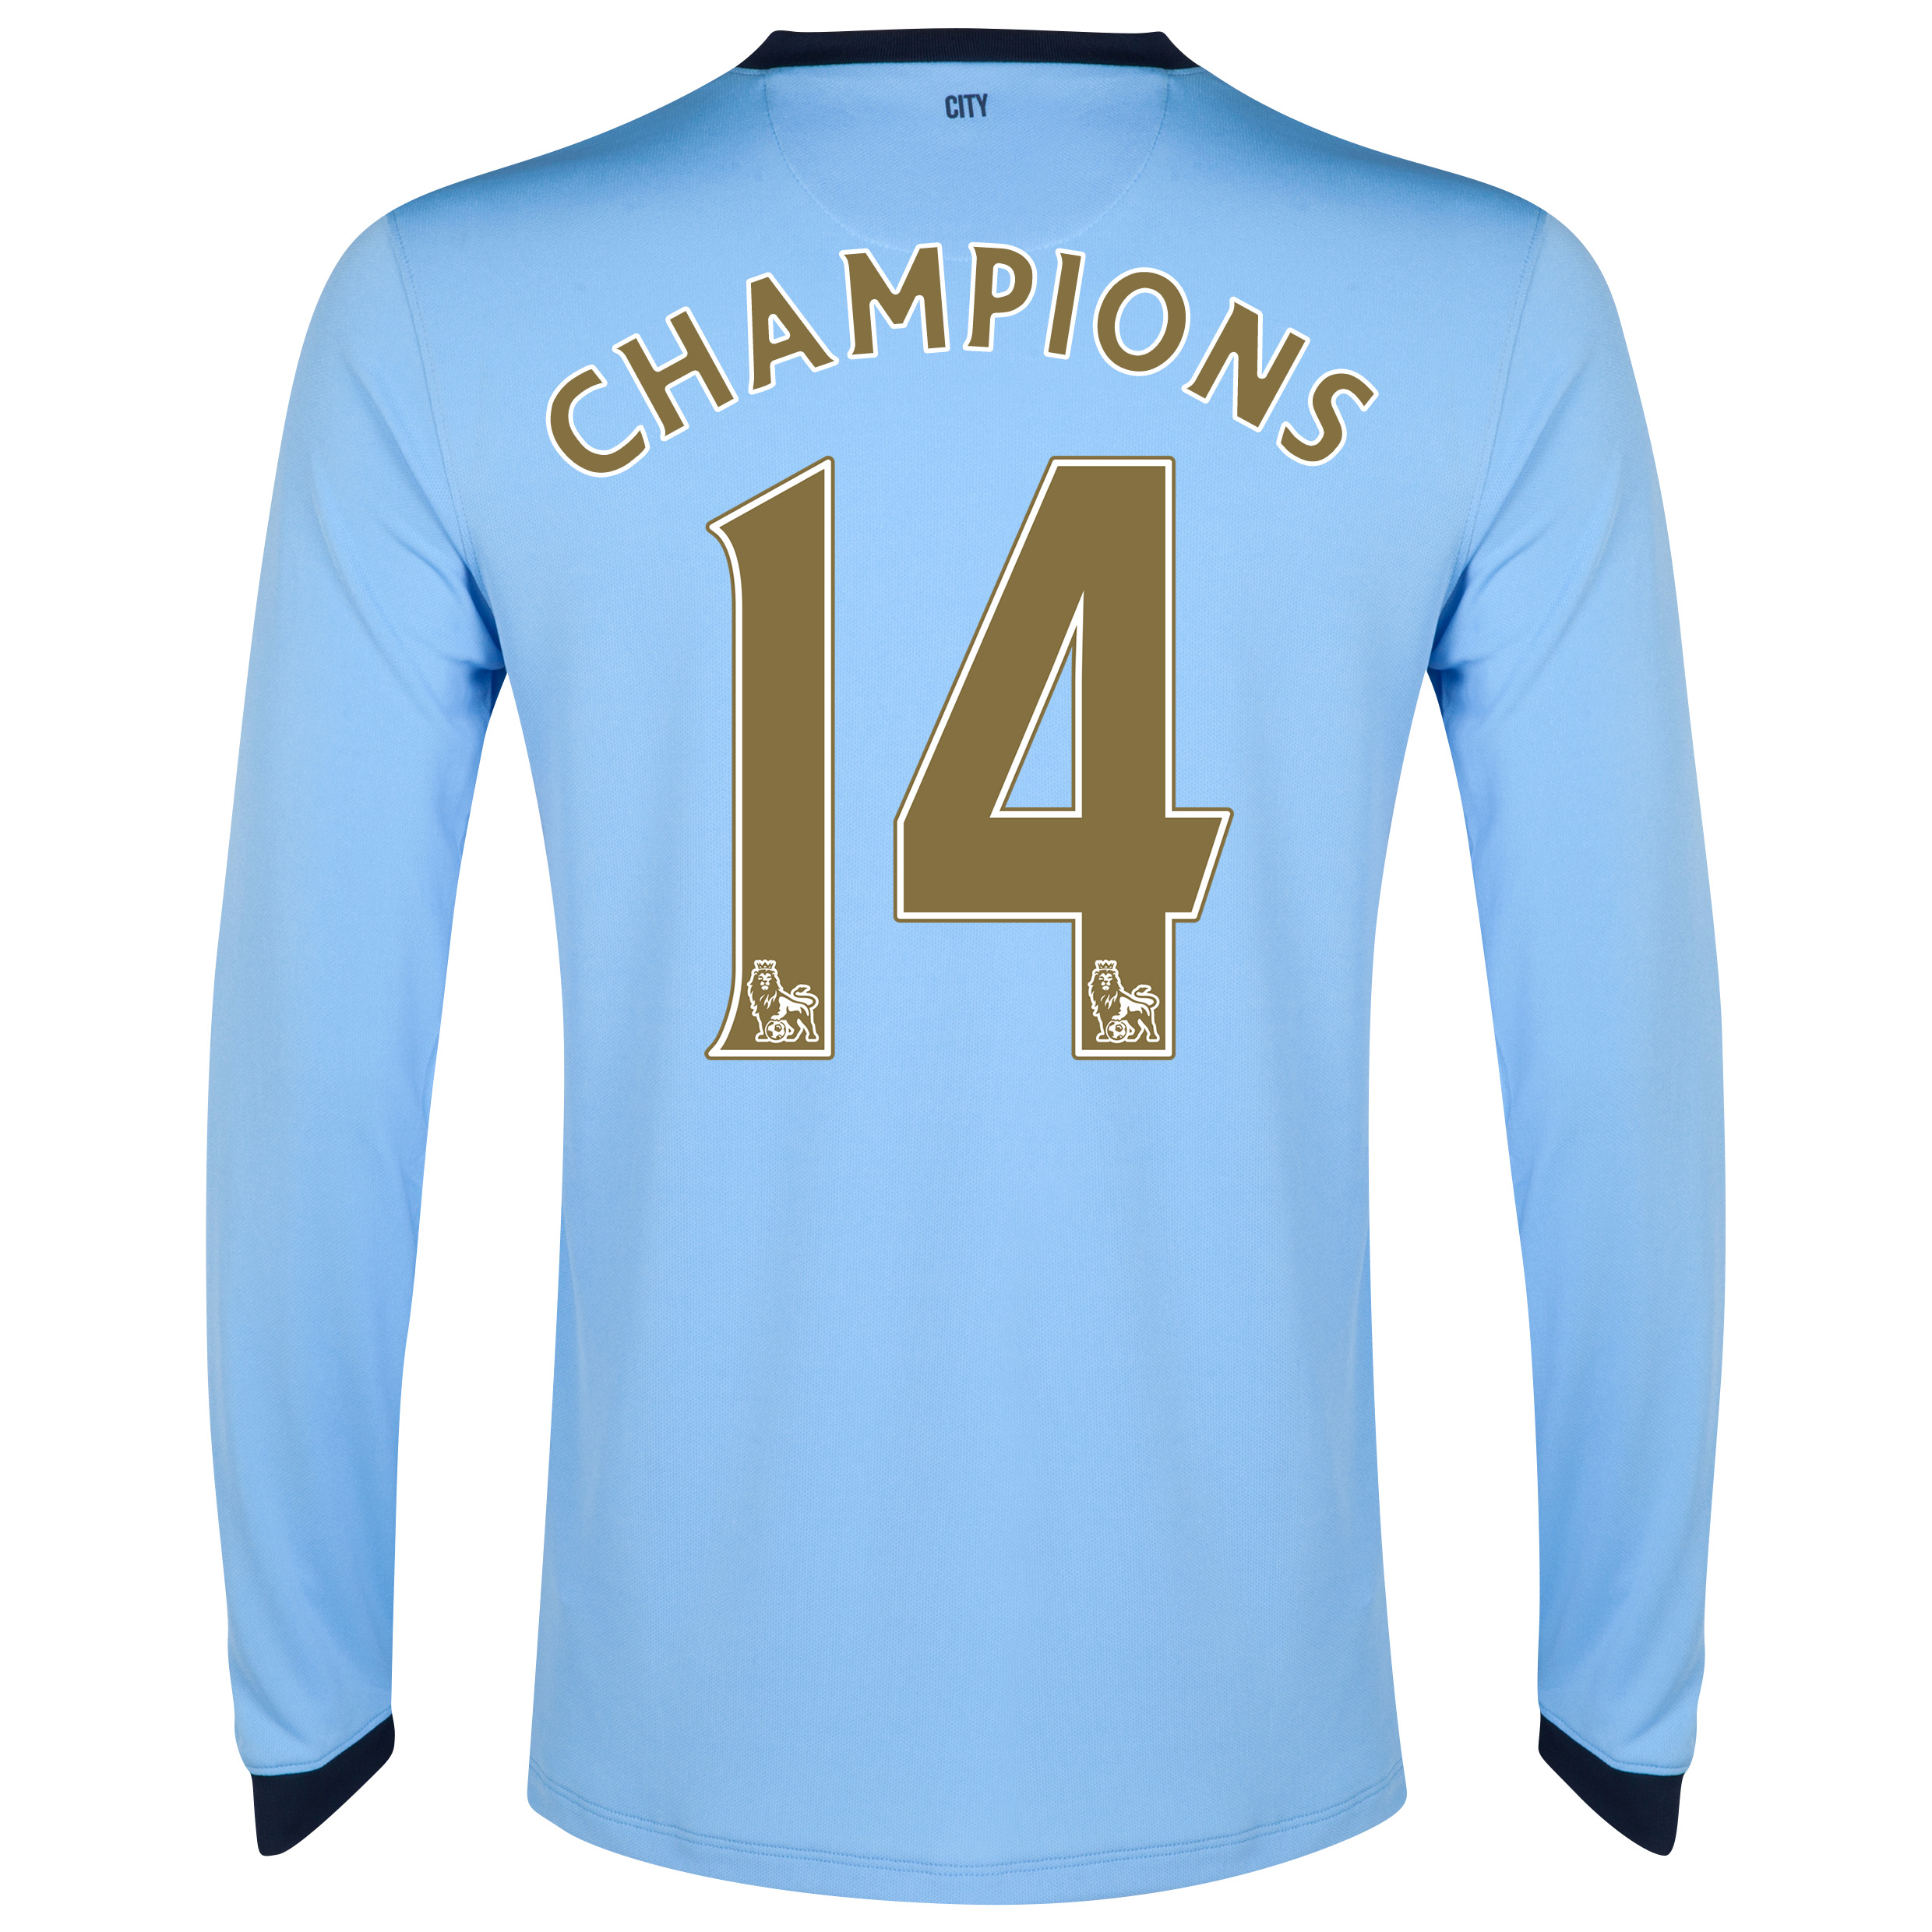 Manchester City Home Shirt 2014/15 - Long Sleeve - Kids Sky Blue with Gold Champions 14 printing